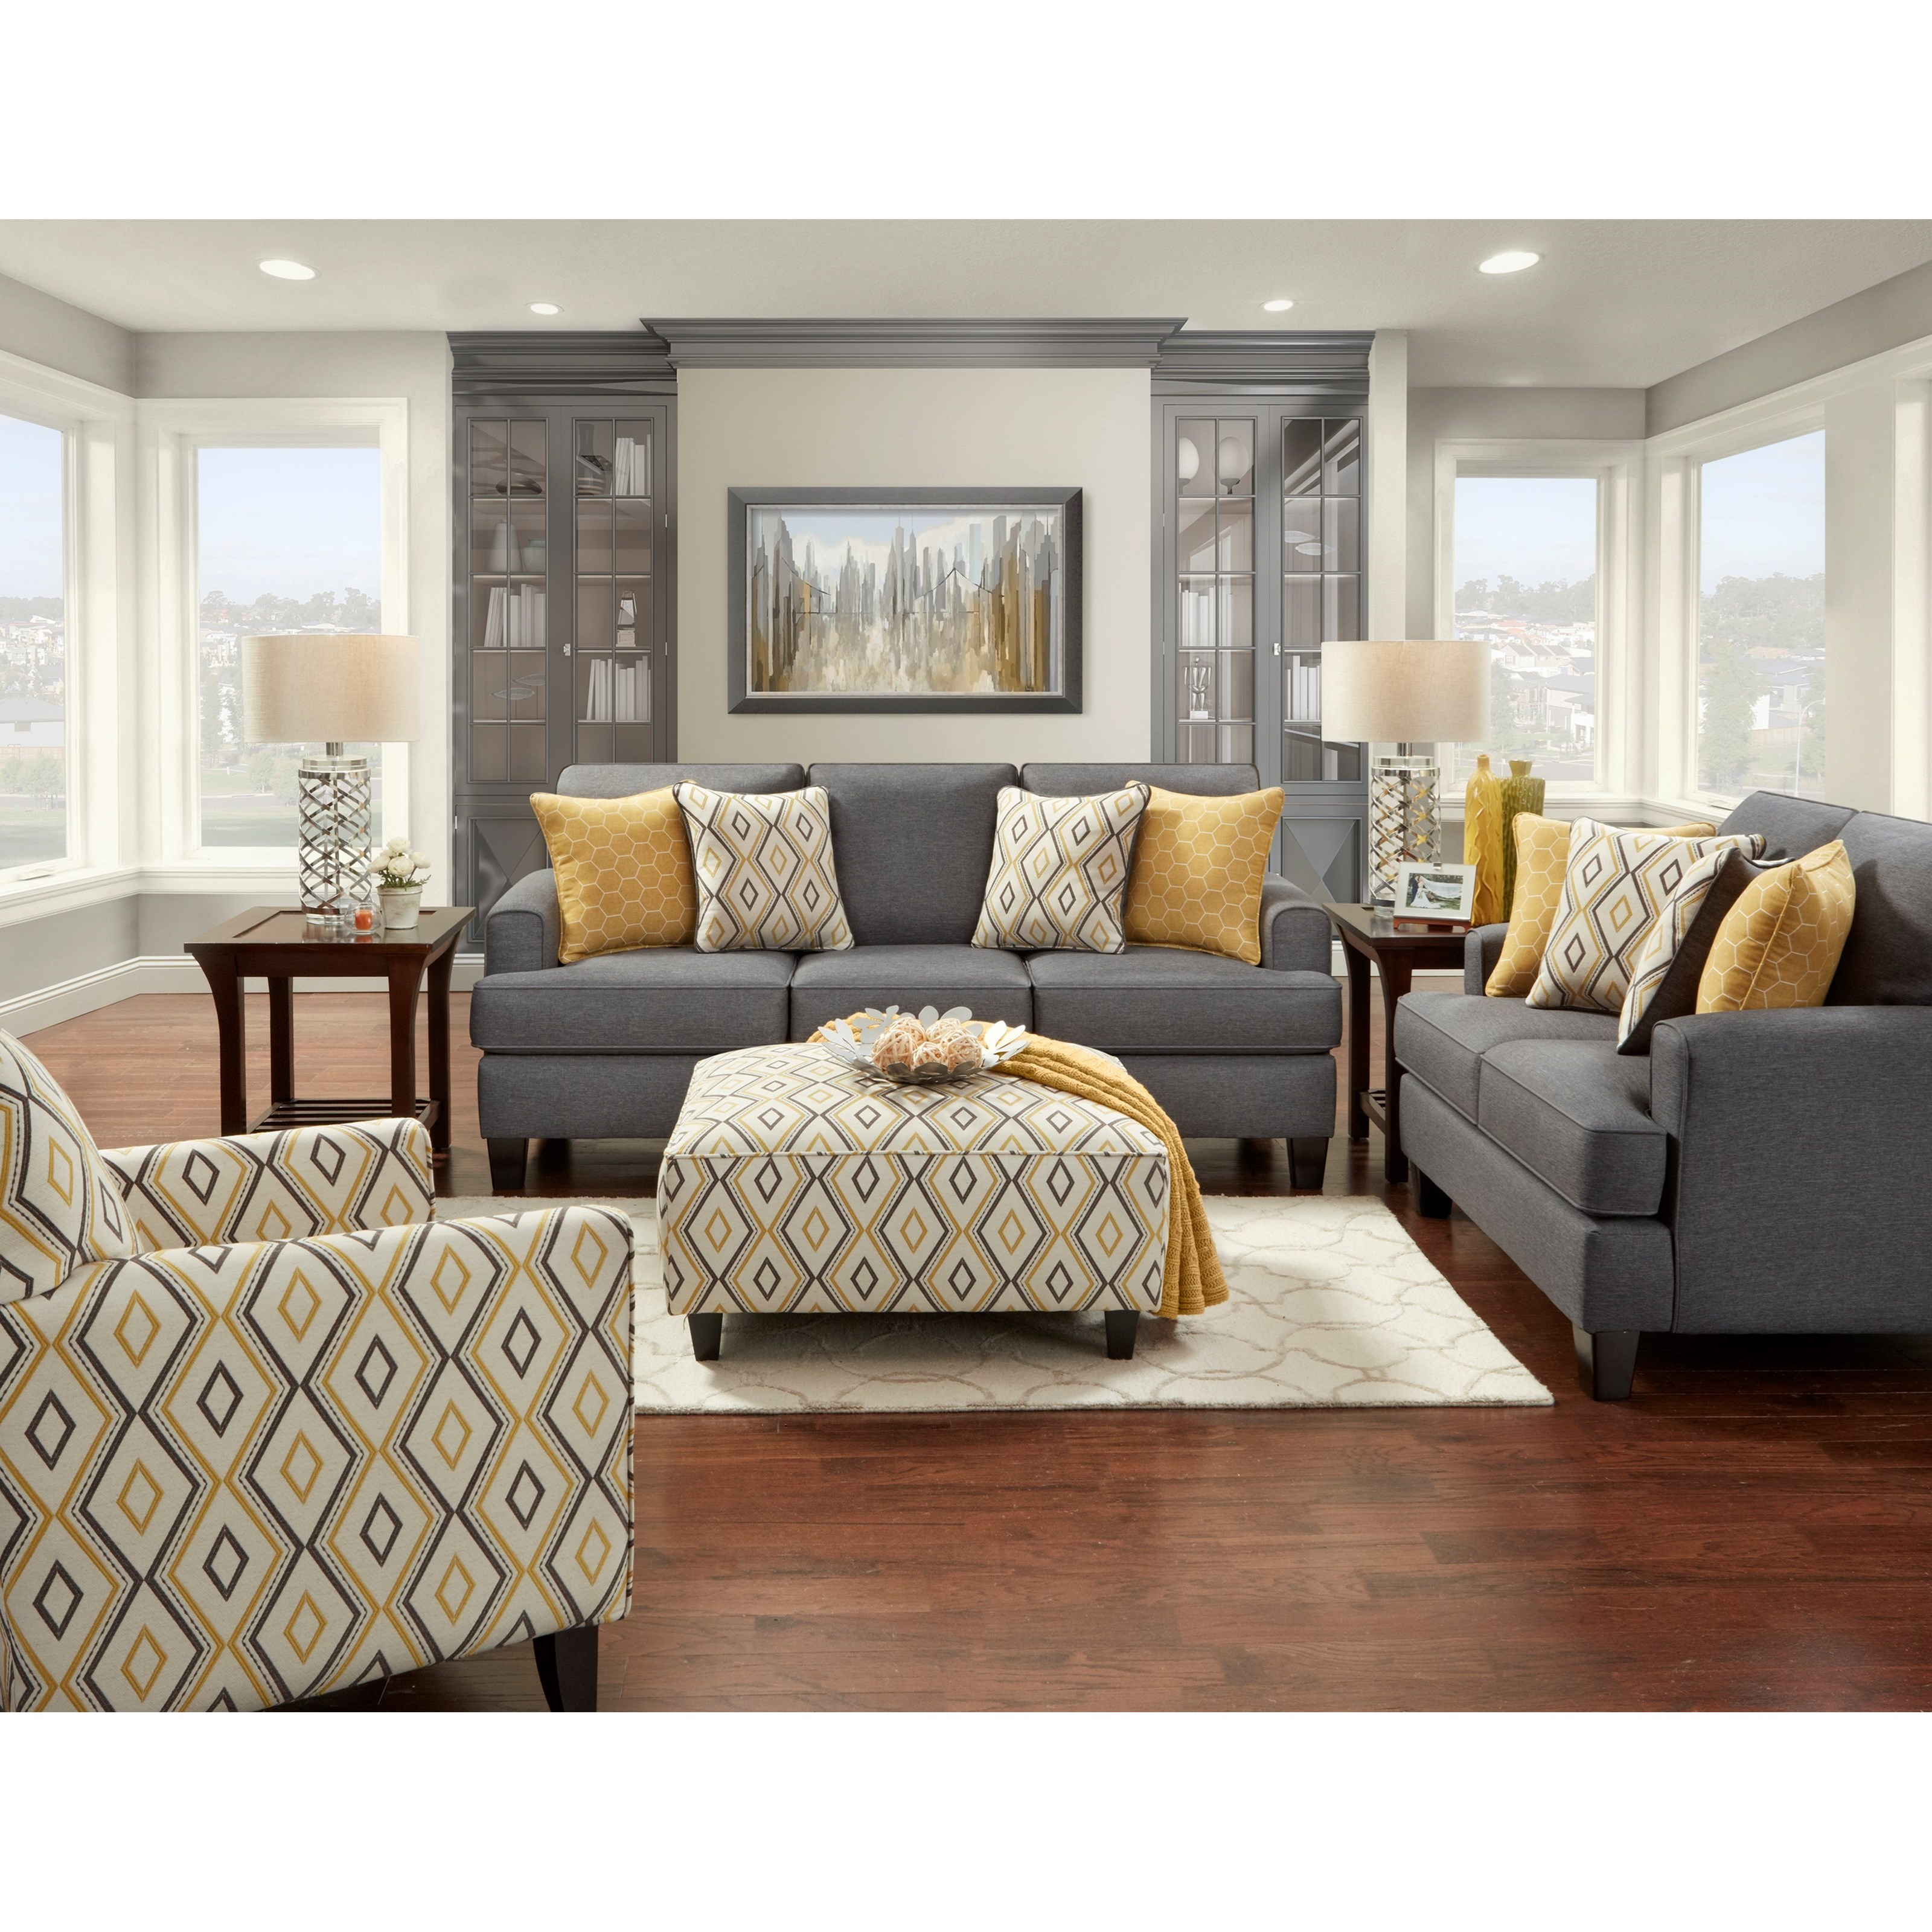 2600 Stationary Living Room Group by Fusion Furniture at Prime Brothers Furniture